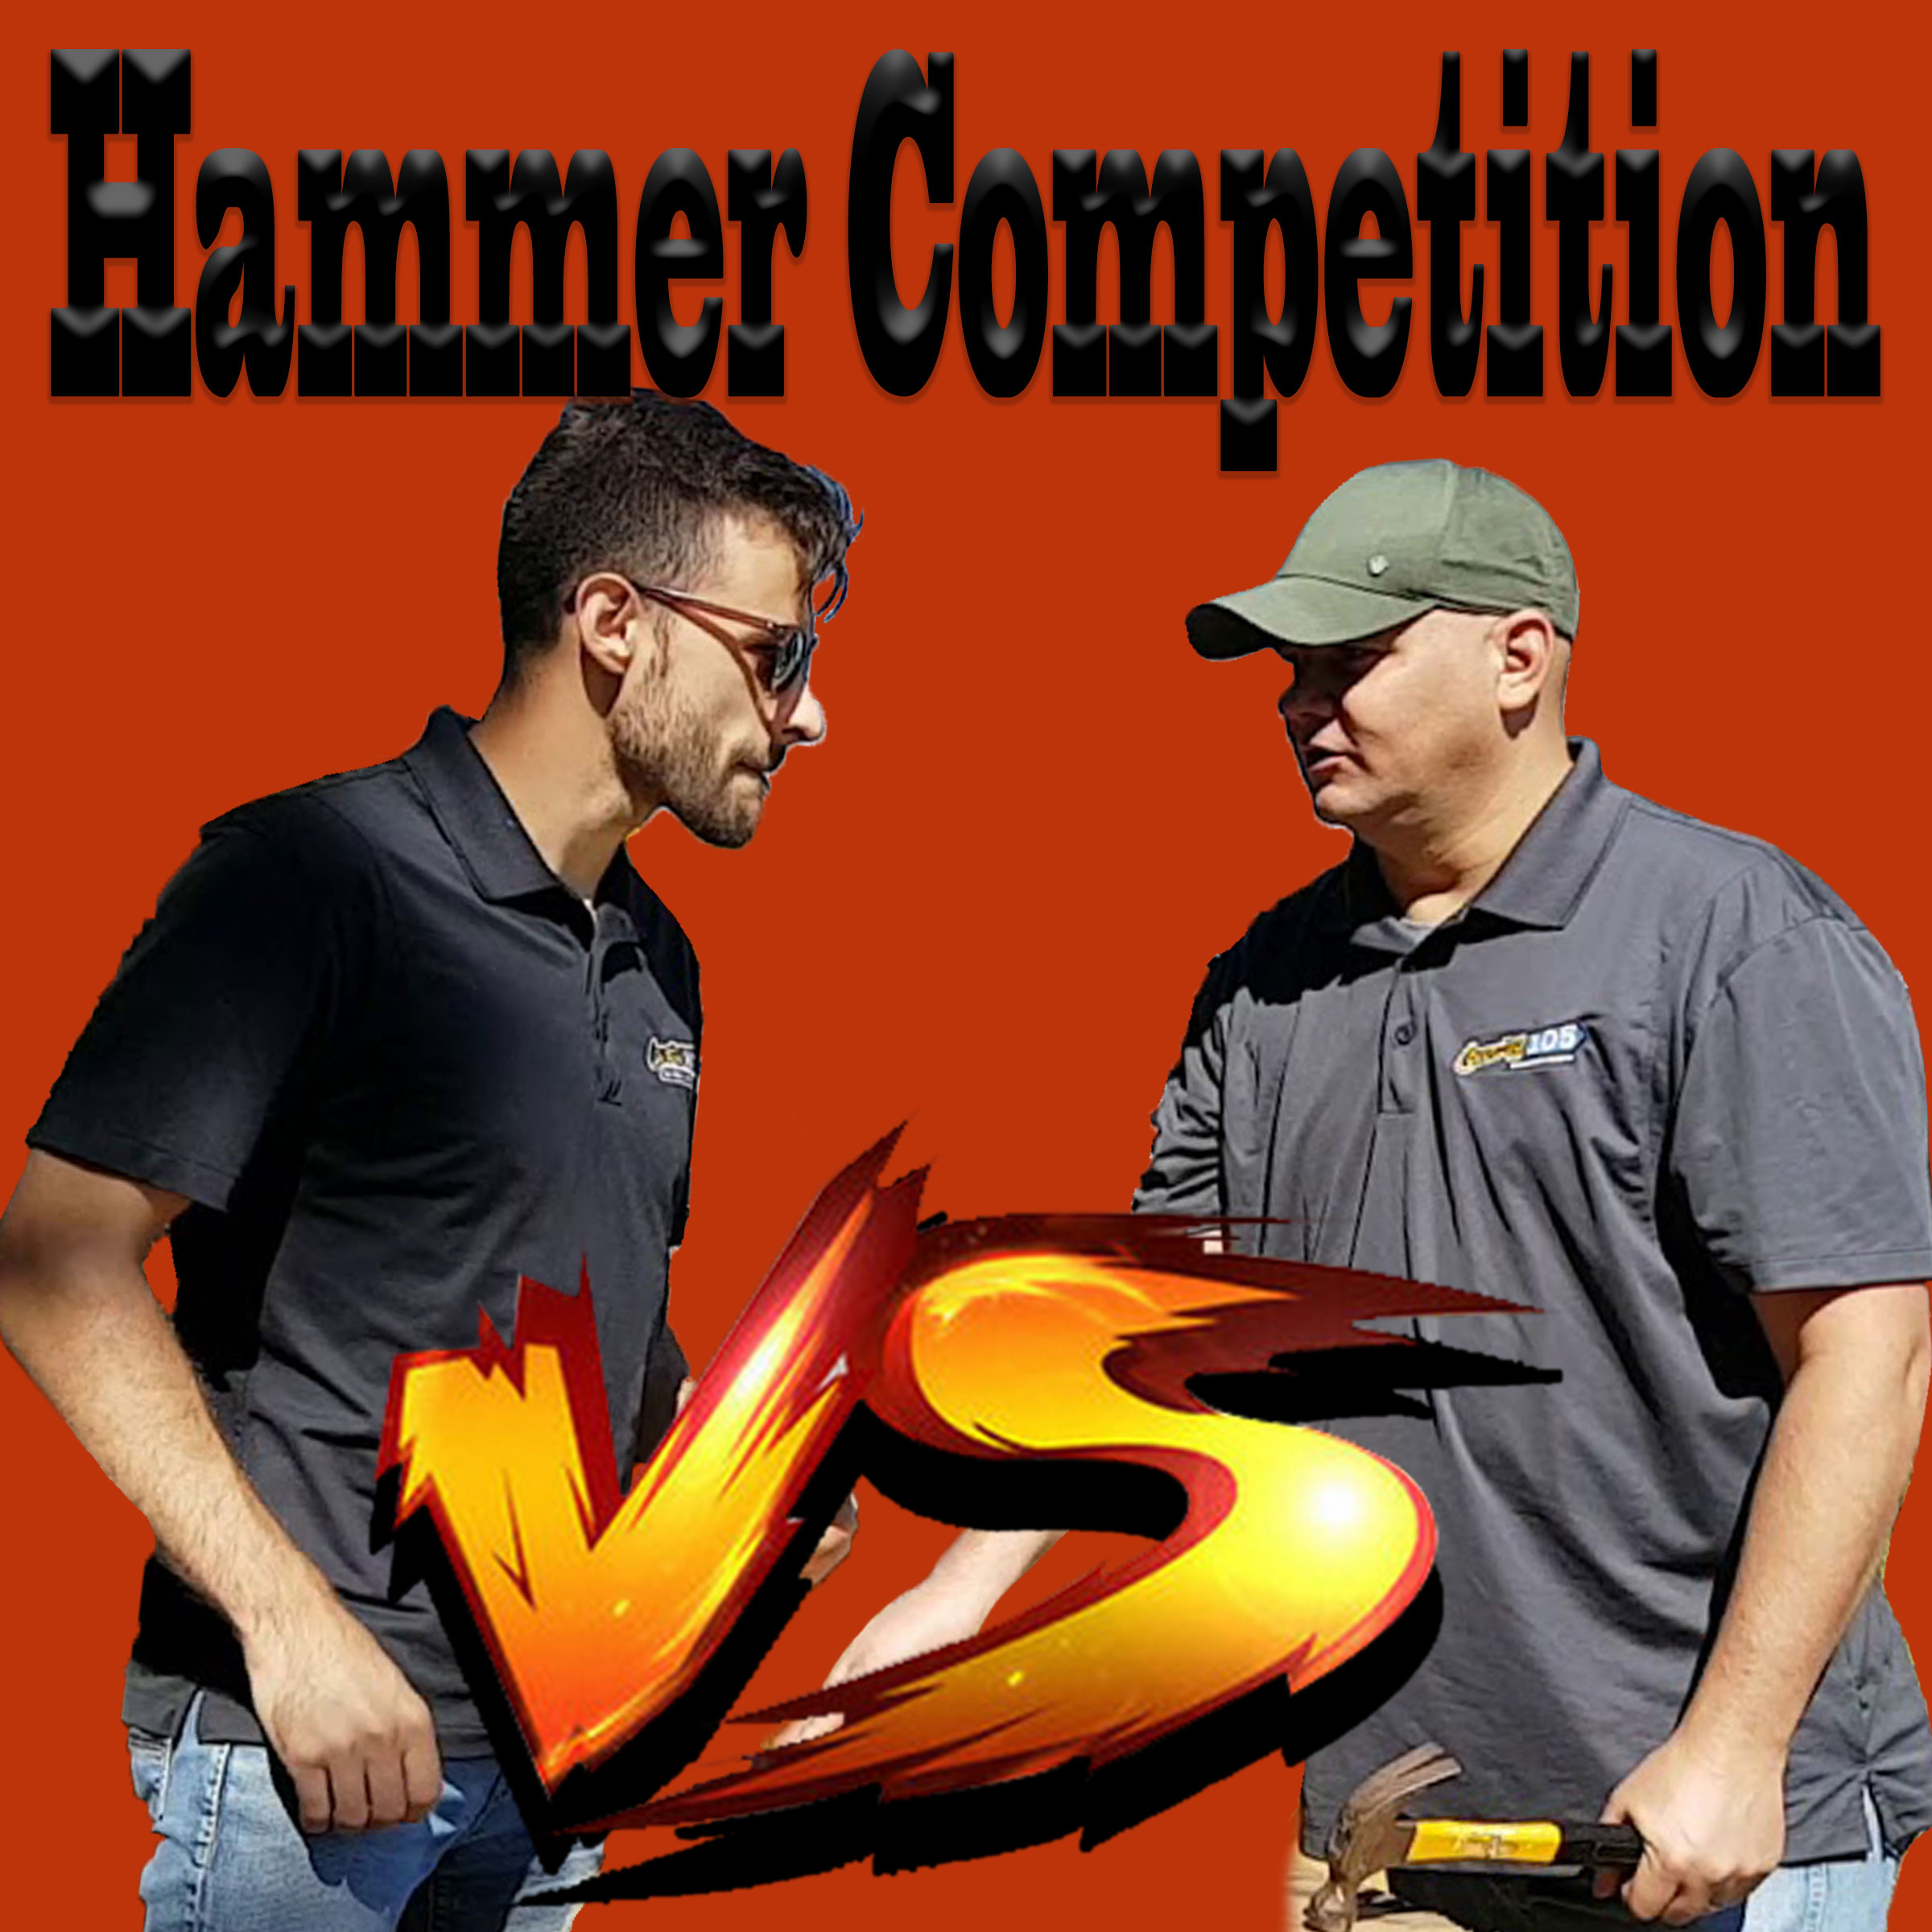 Hammer Contest: Andy Vs Trent